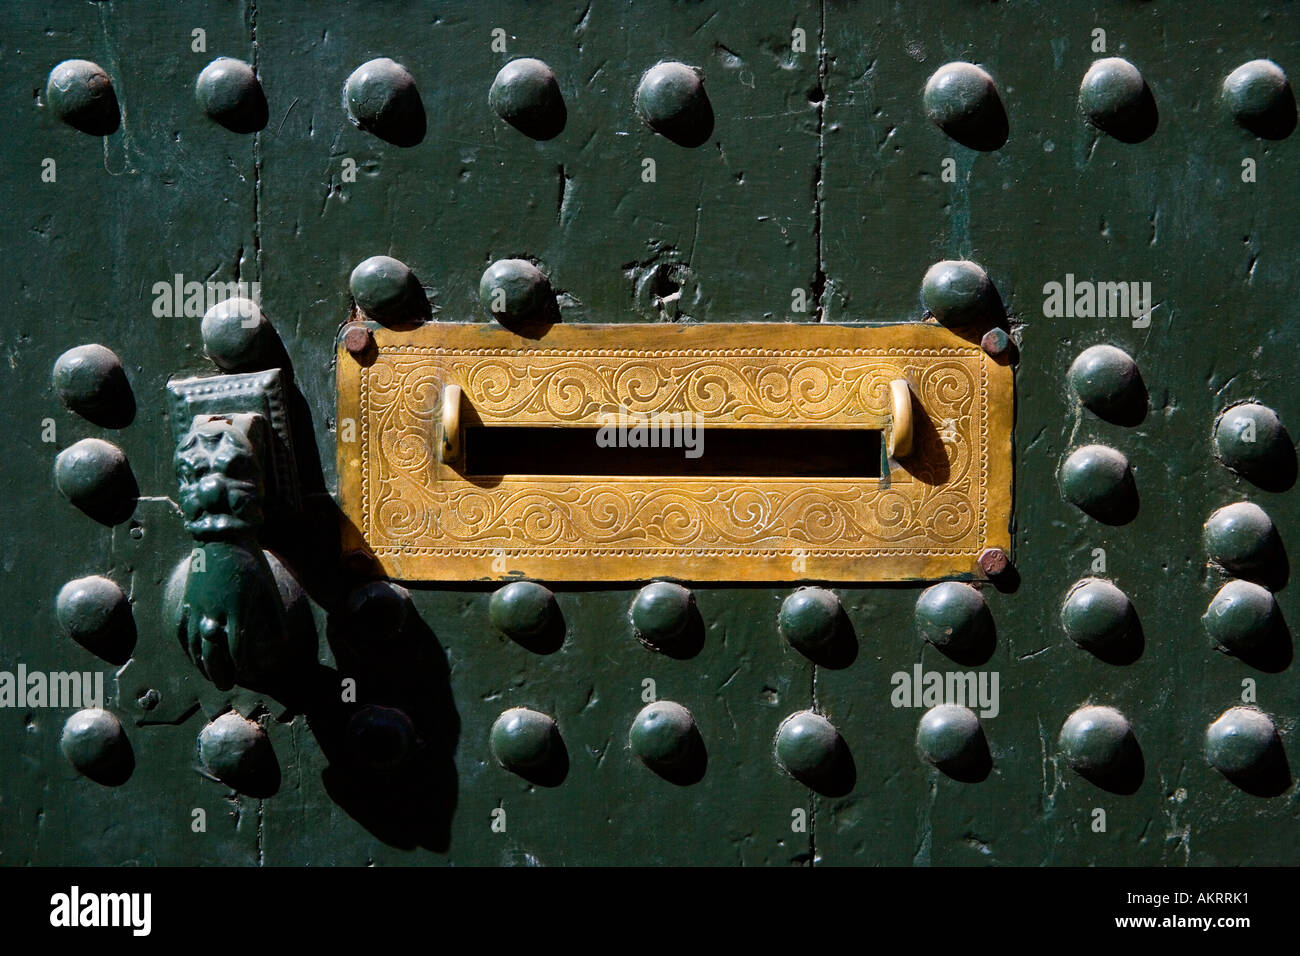 Intricately Tooled Mail Slot with the Hand of Fatima as a Door Knocker, Casbah, Marrakeesh - Stock Image